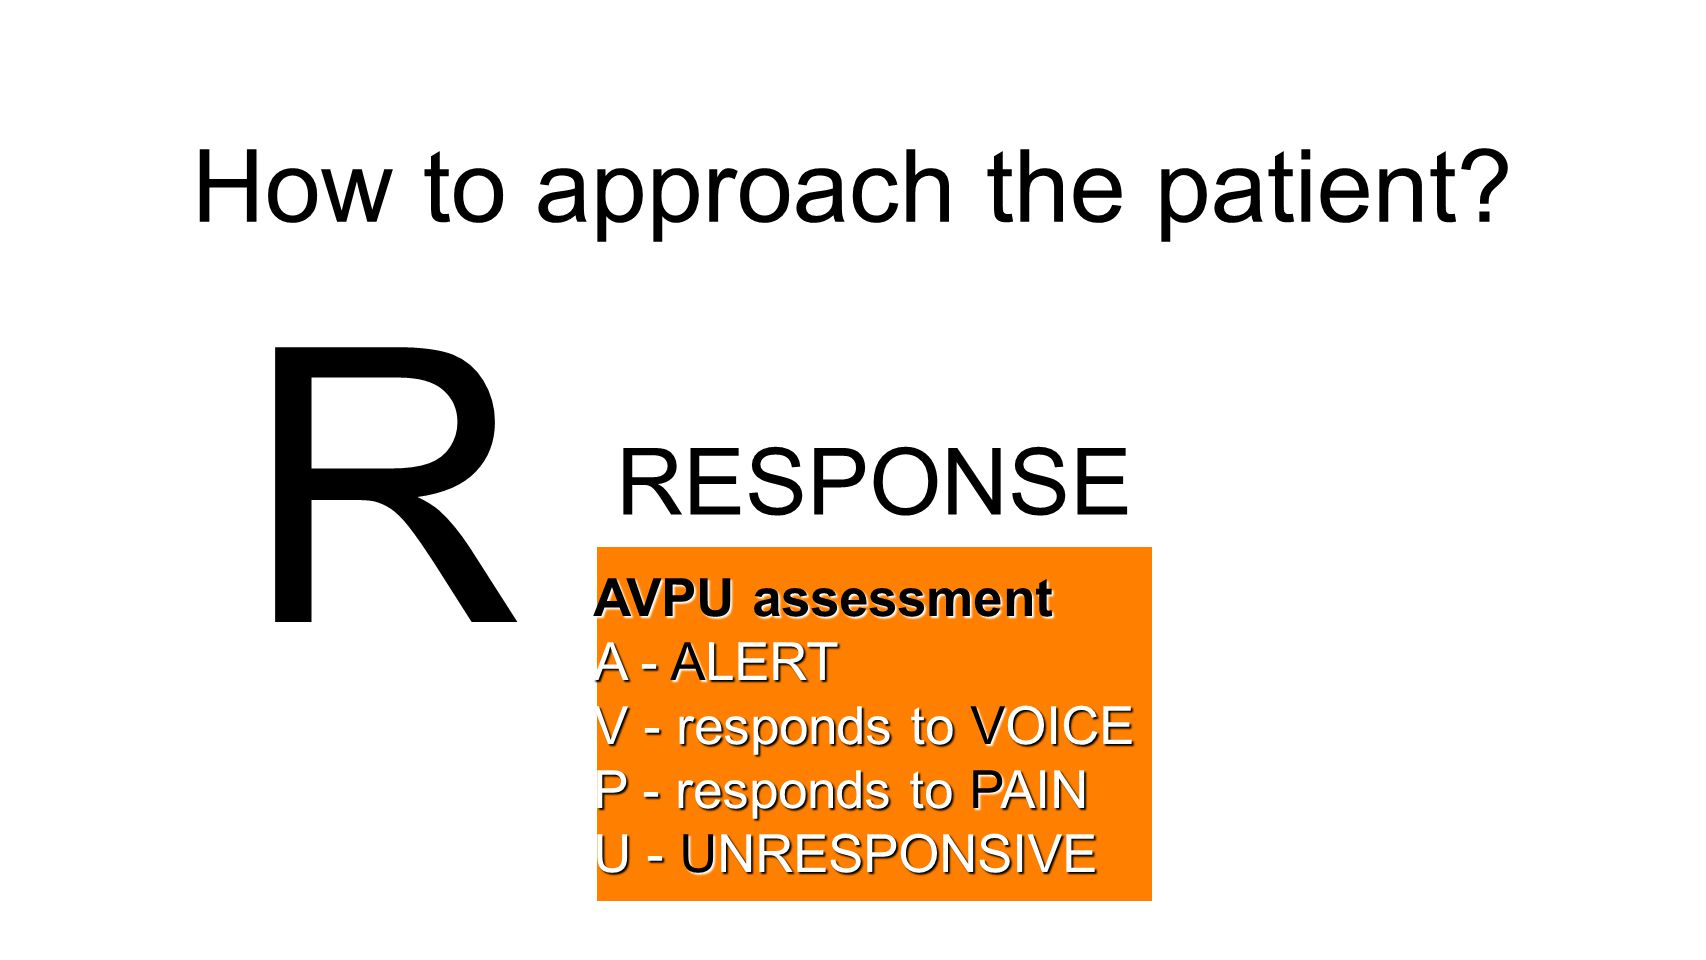 How to approach the patient? R RESPONSE AVPU assessment A - ALERT V - responds to VOICE P - responds to PAIN U - UNRESPONSIVE